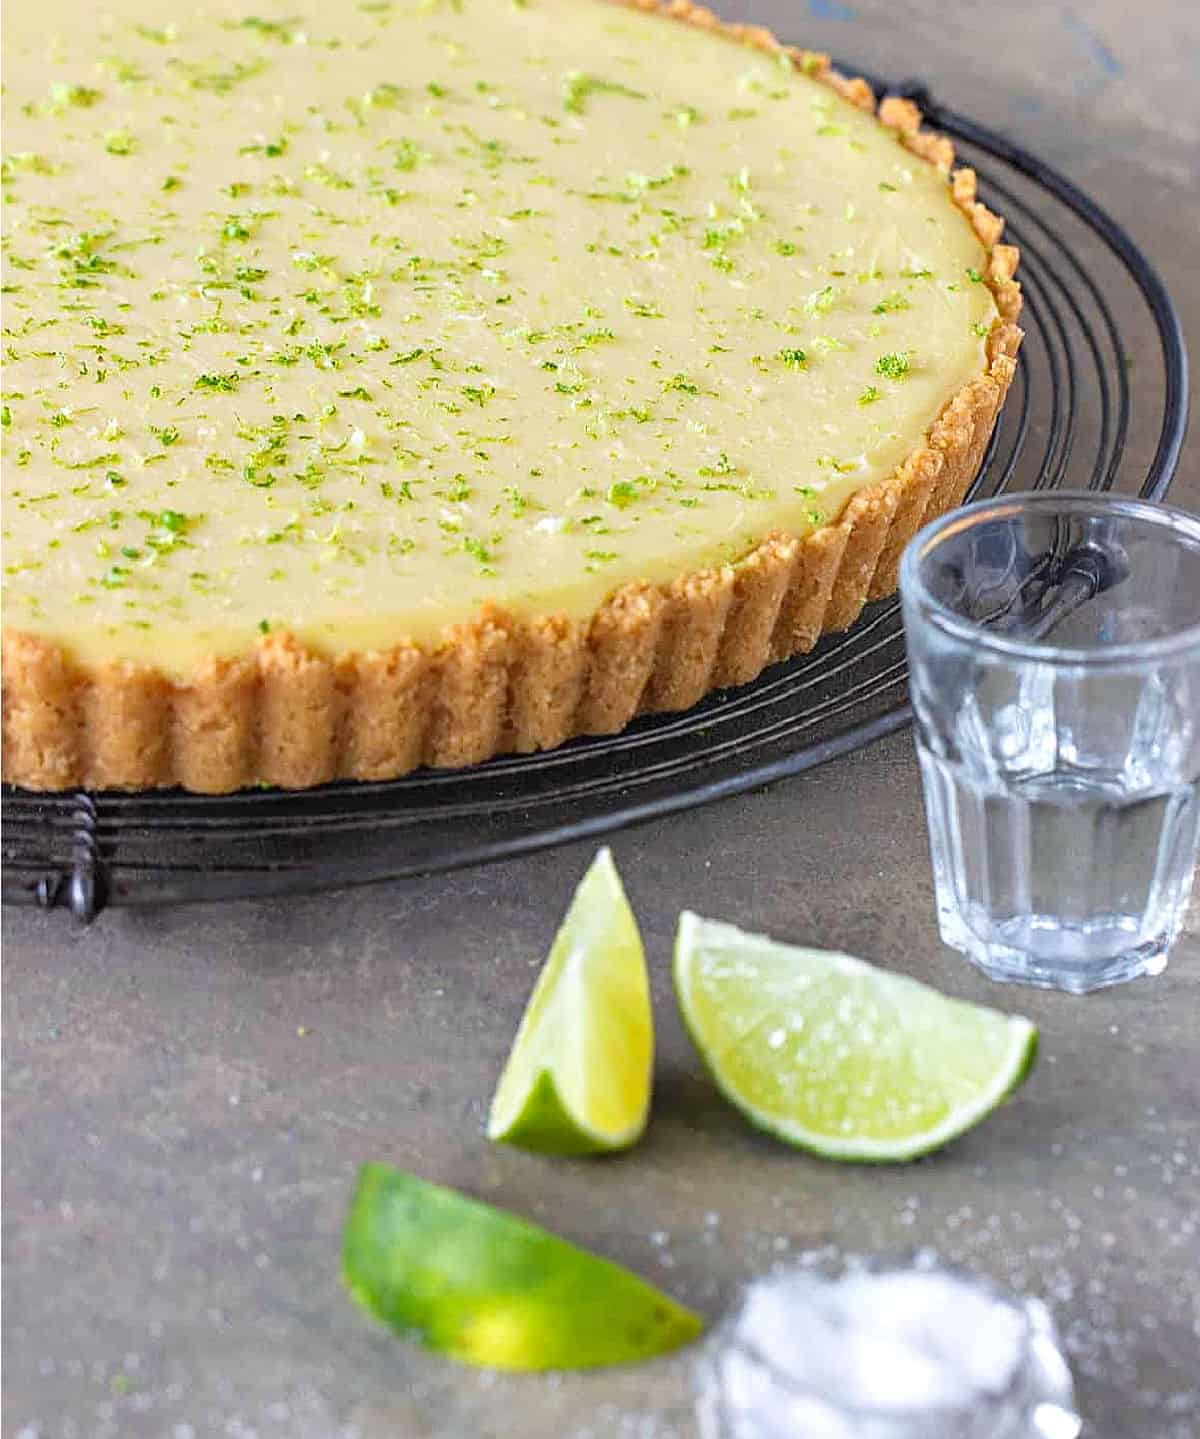 Partial view of lime pie on wire rack, cut limes, salt and glass on grey surface